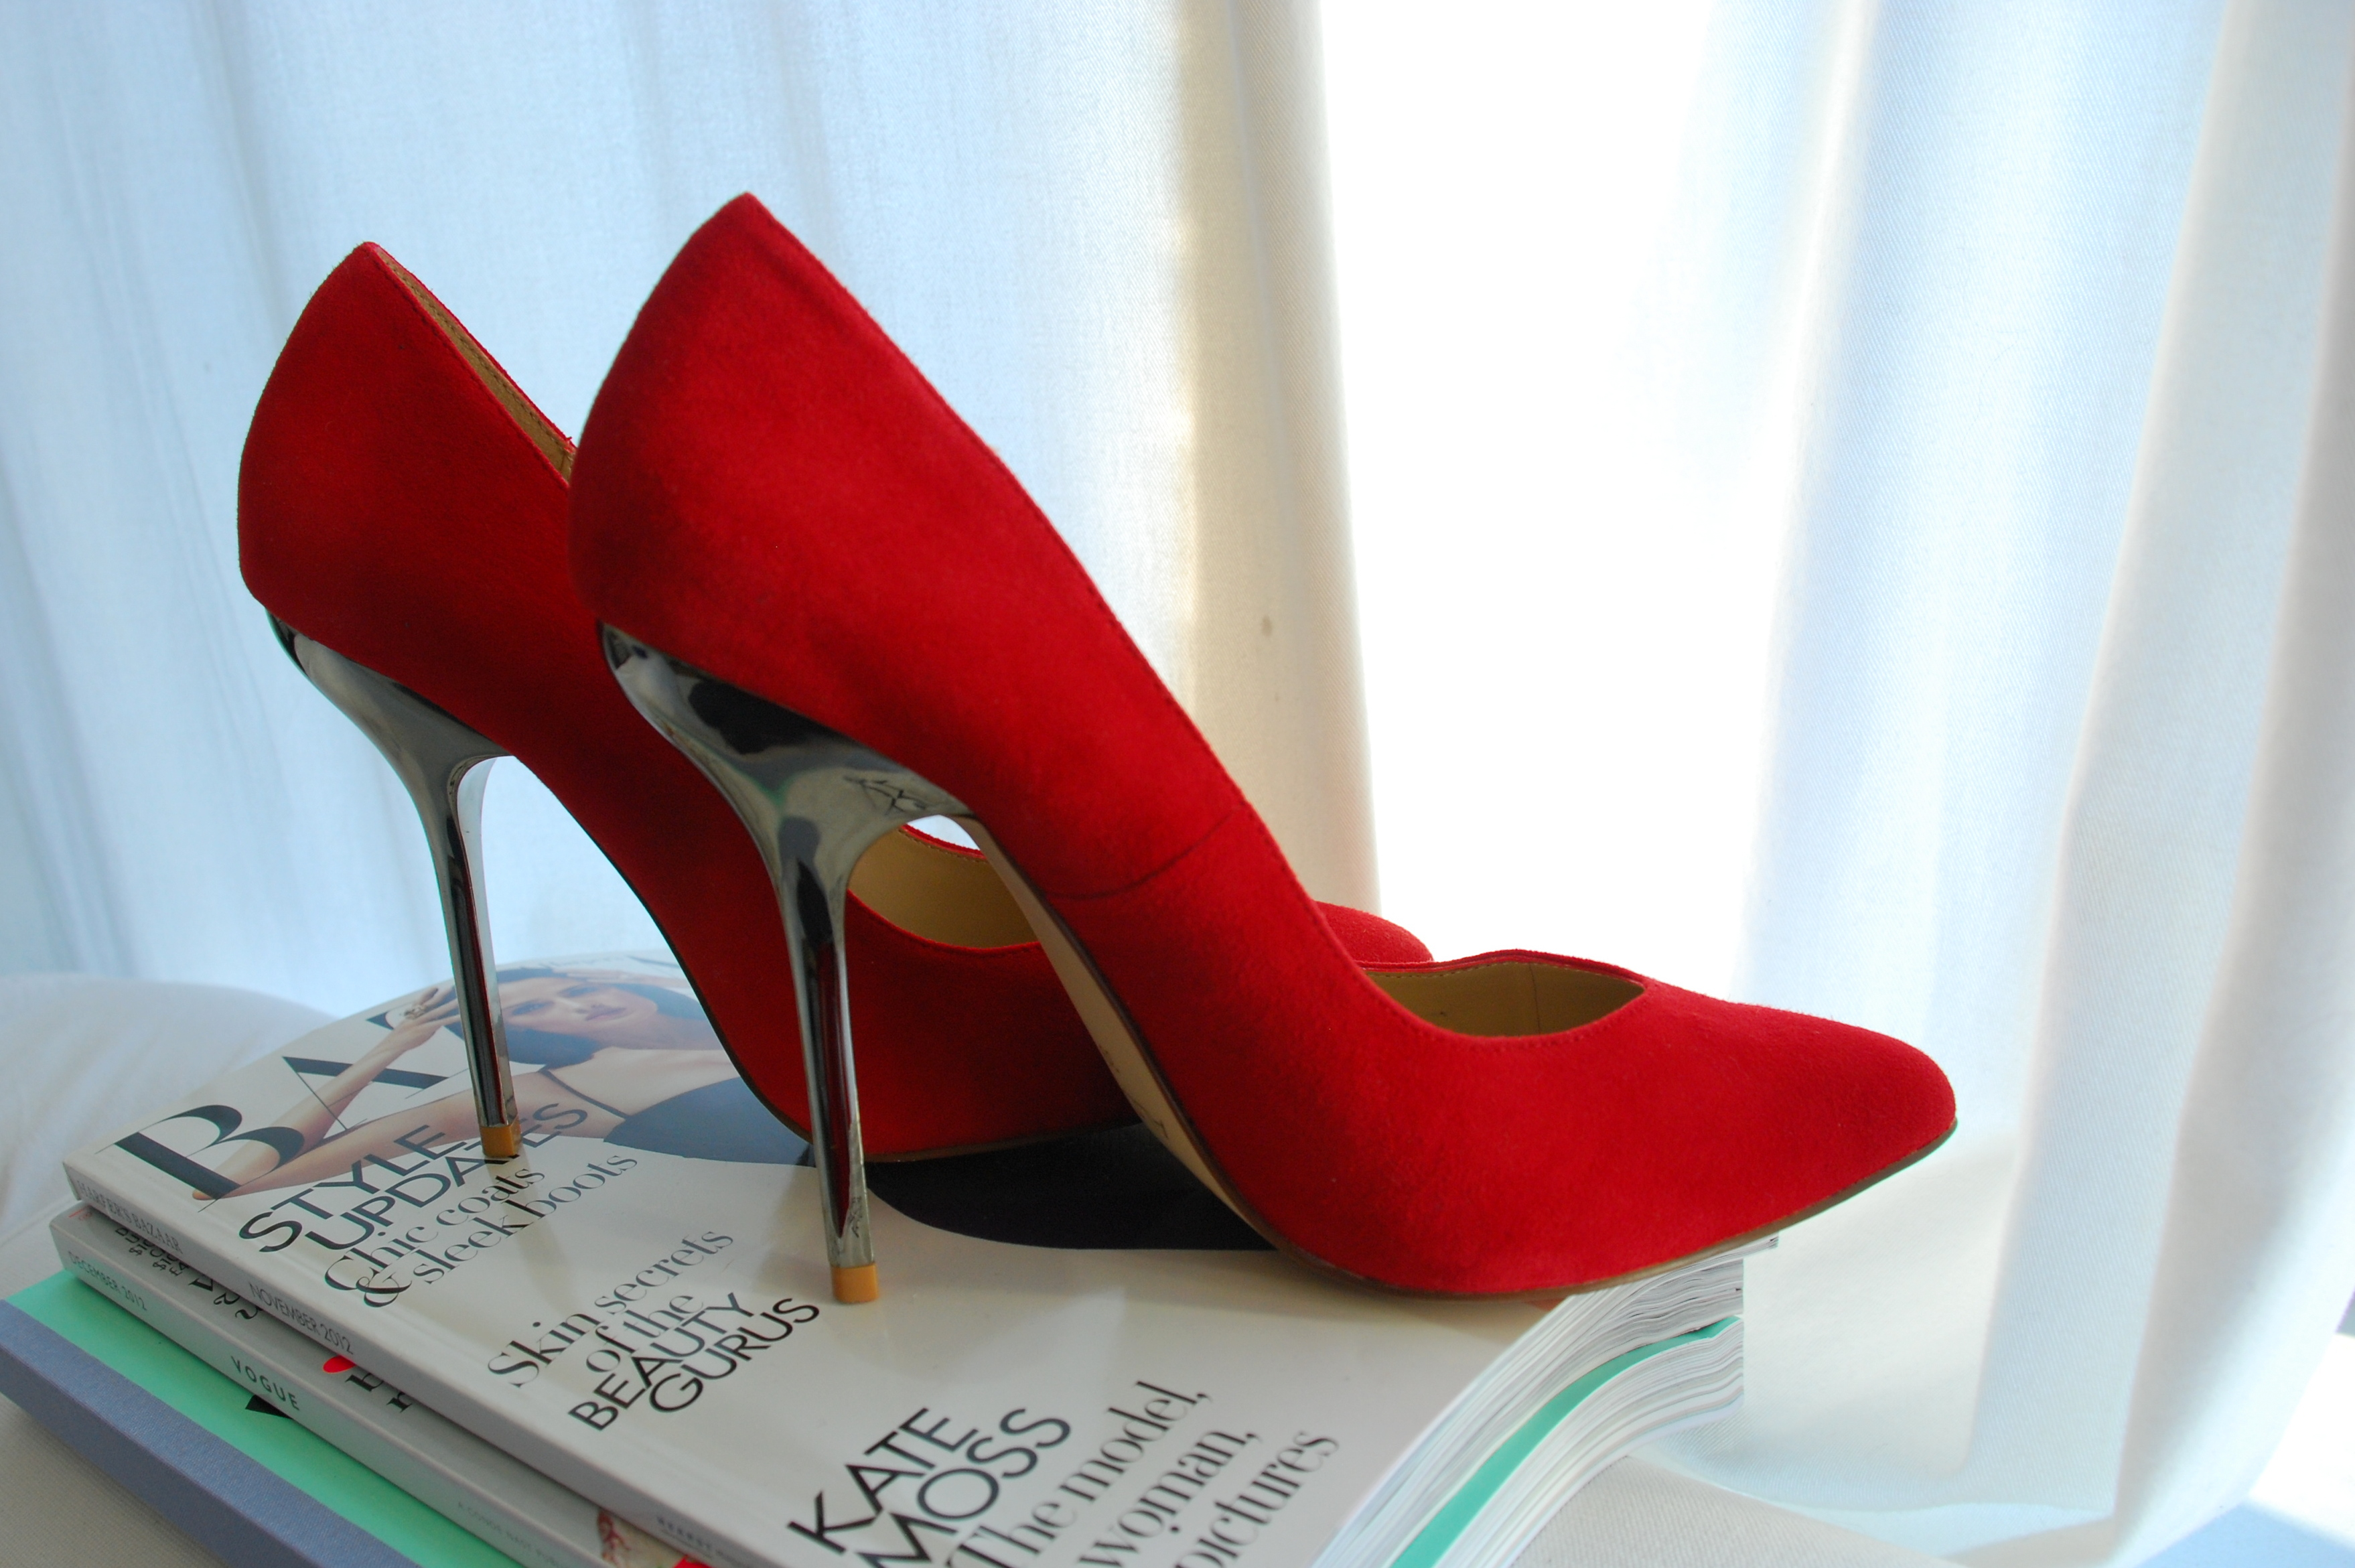 Where Can I Find Red Heels